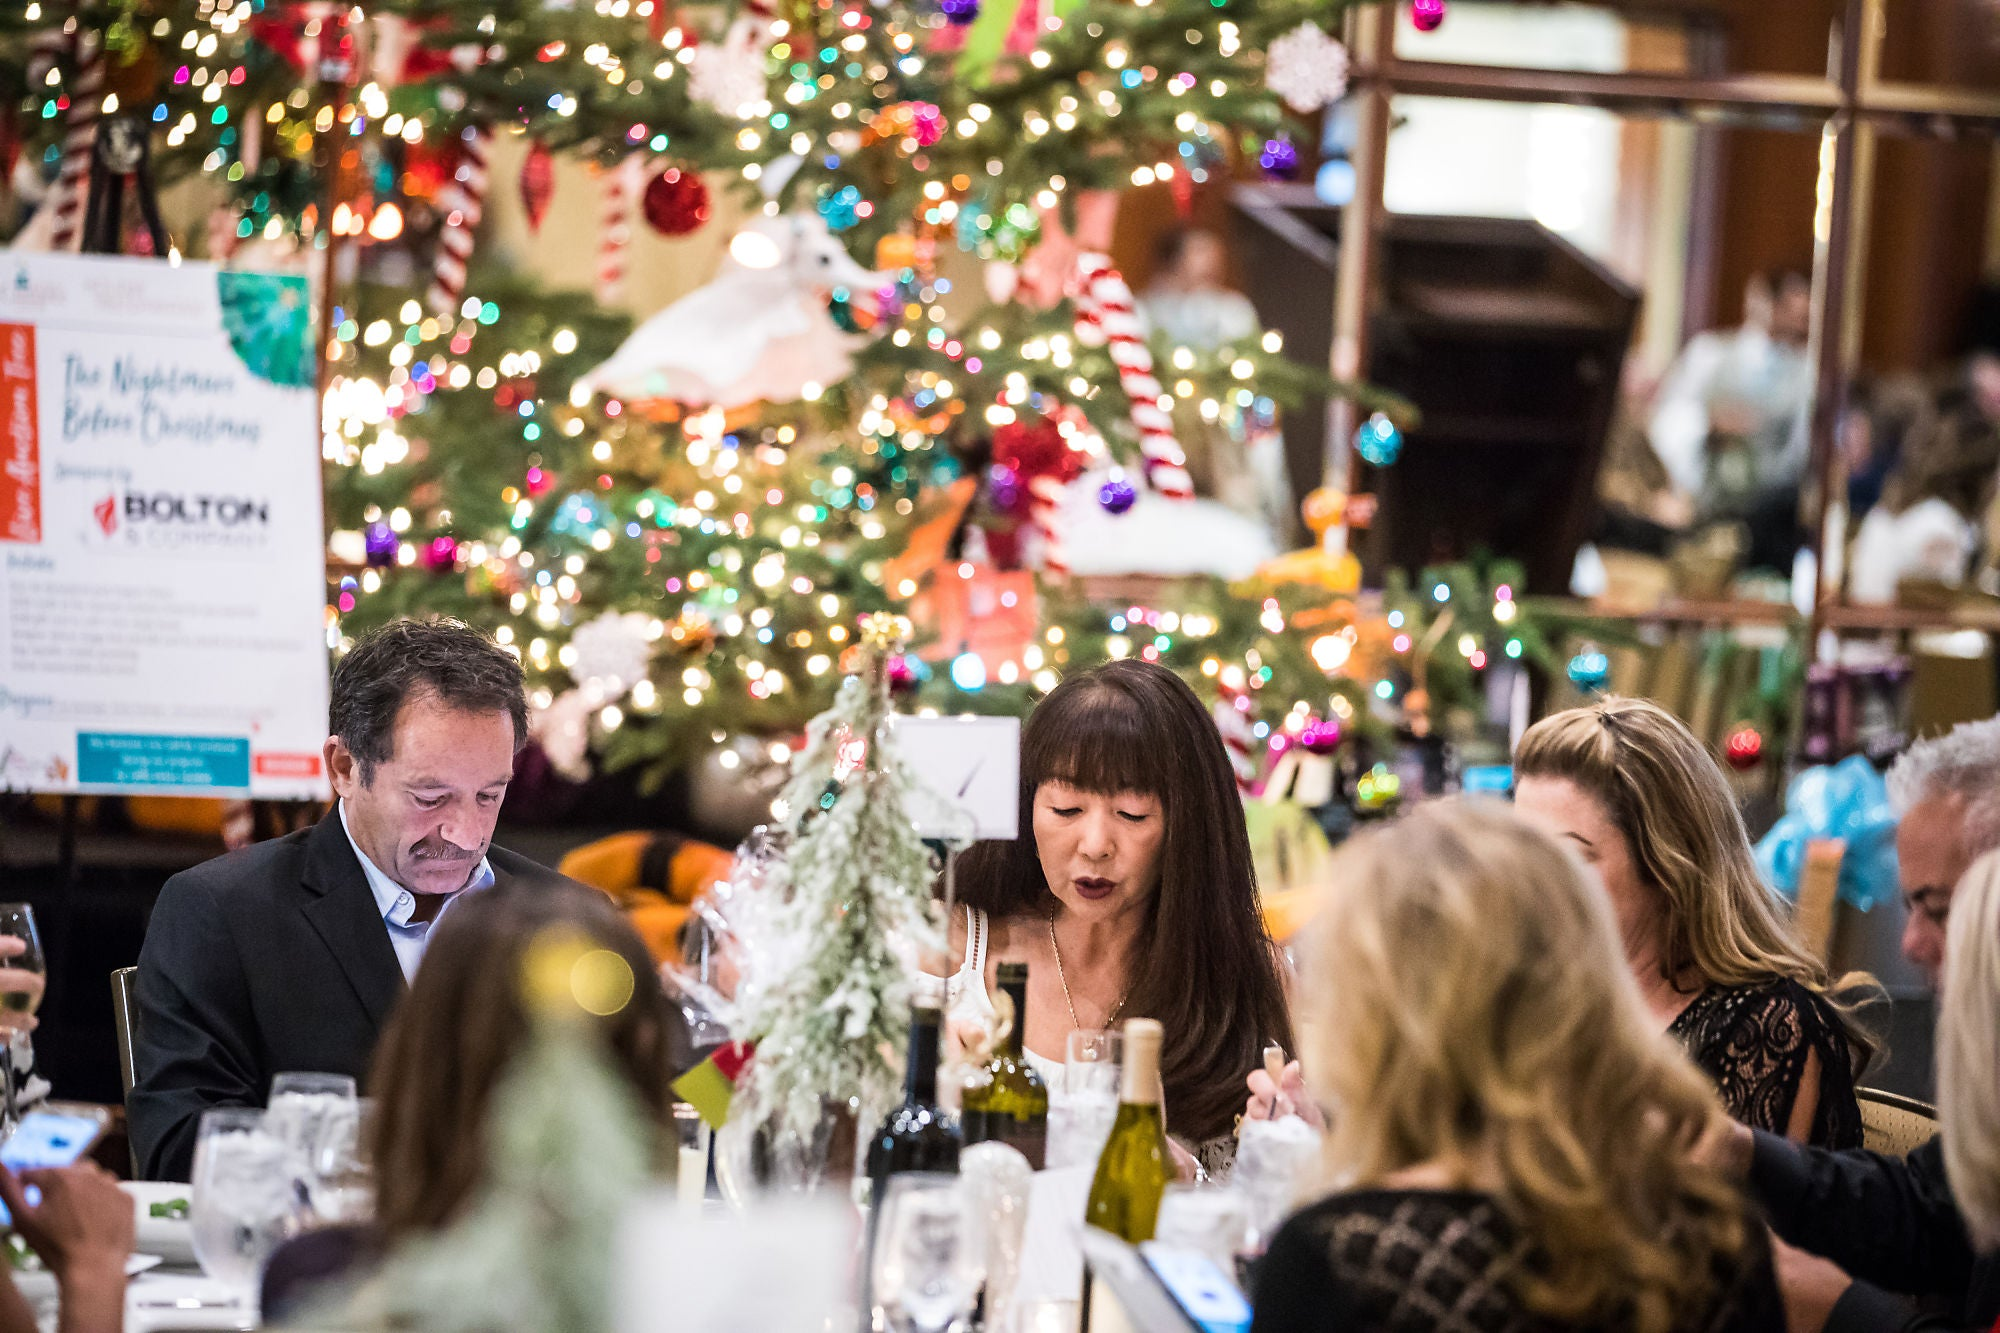 People sitting at a table, surrounded by Christmas decorations